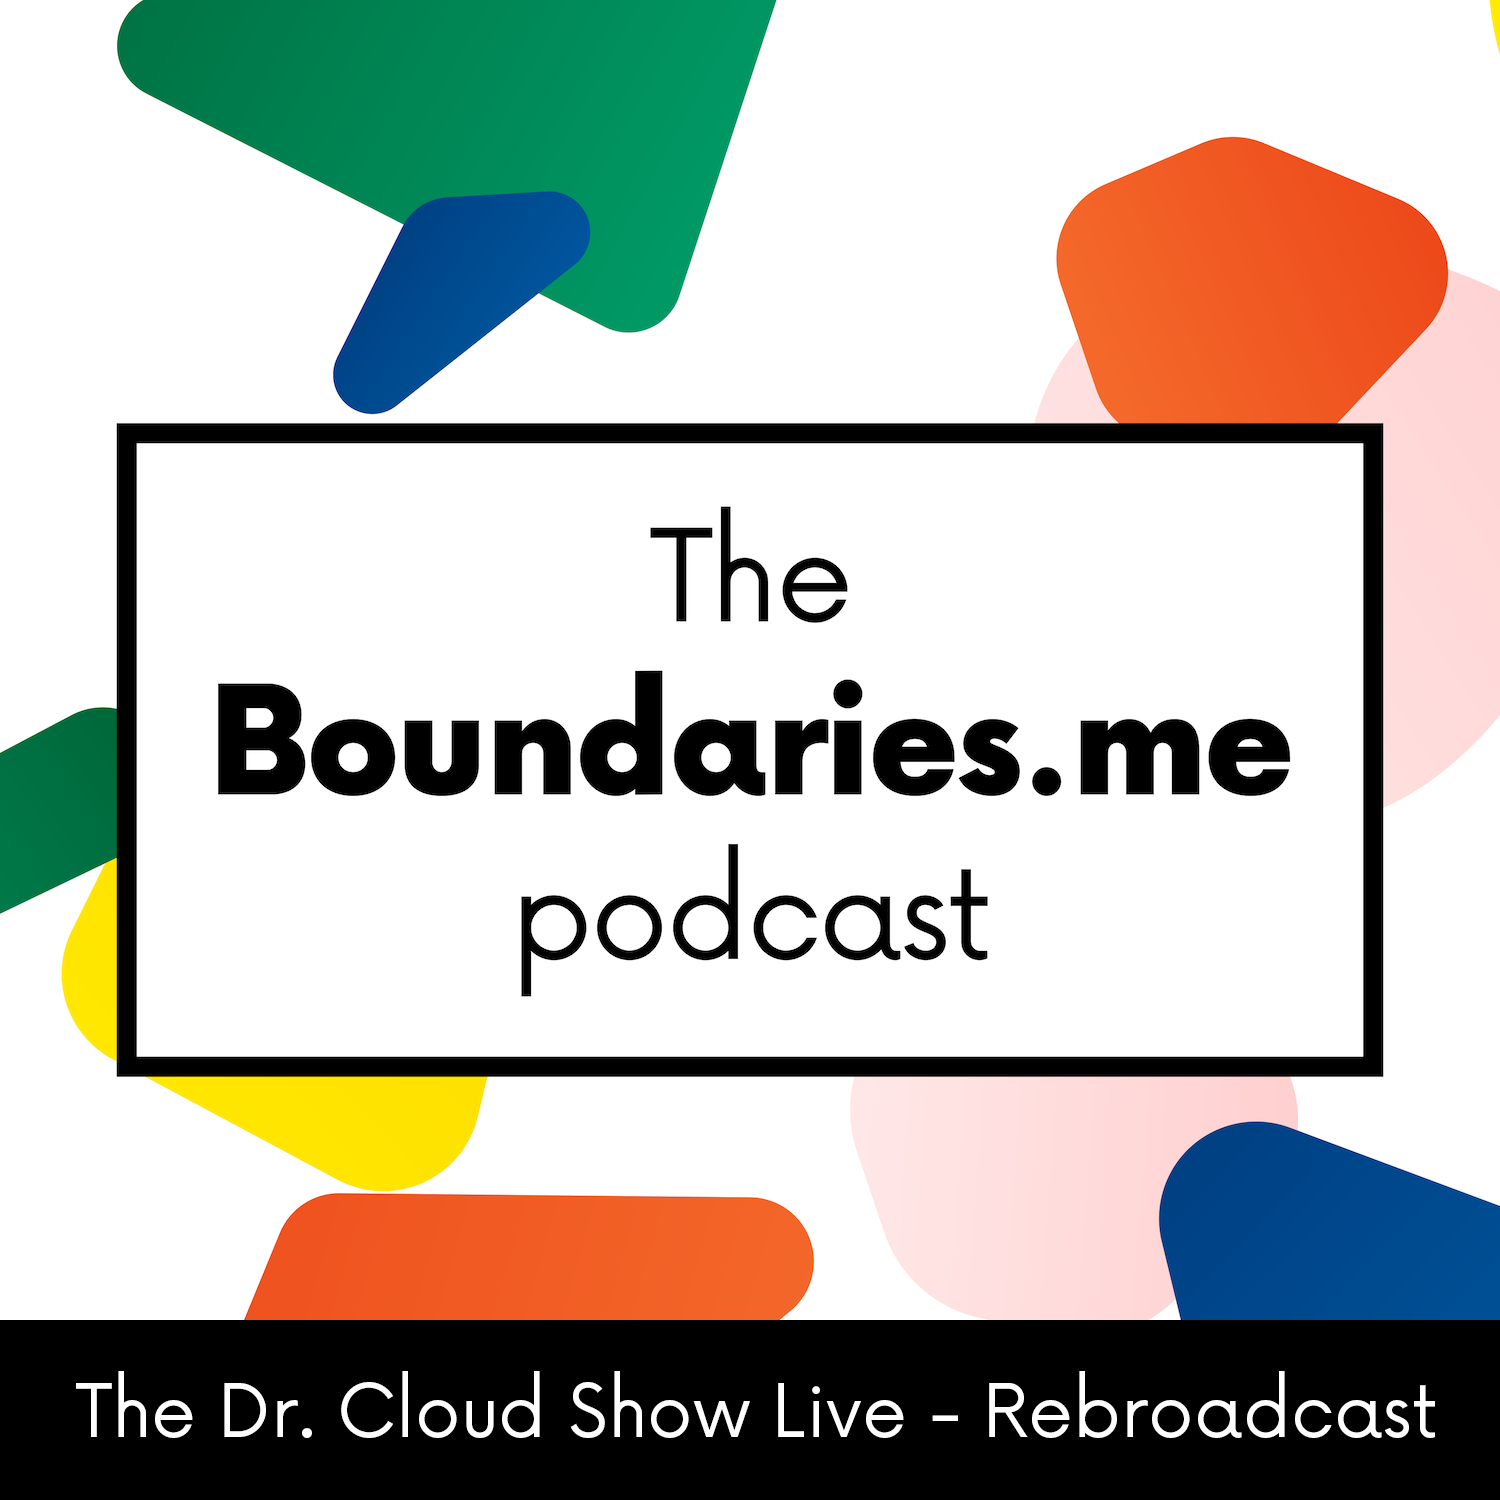 Episode 26 - The Dr. Cloud Show Live - Stress Affects Our Sense Of Time